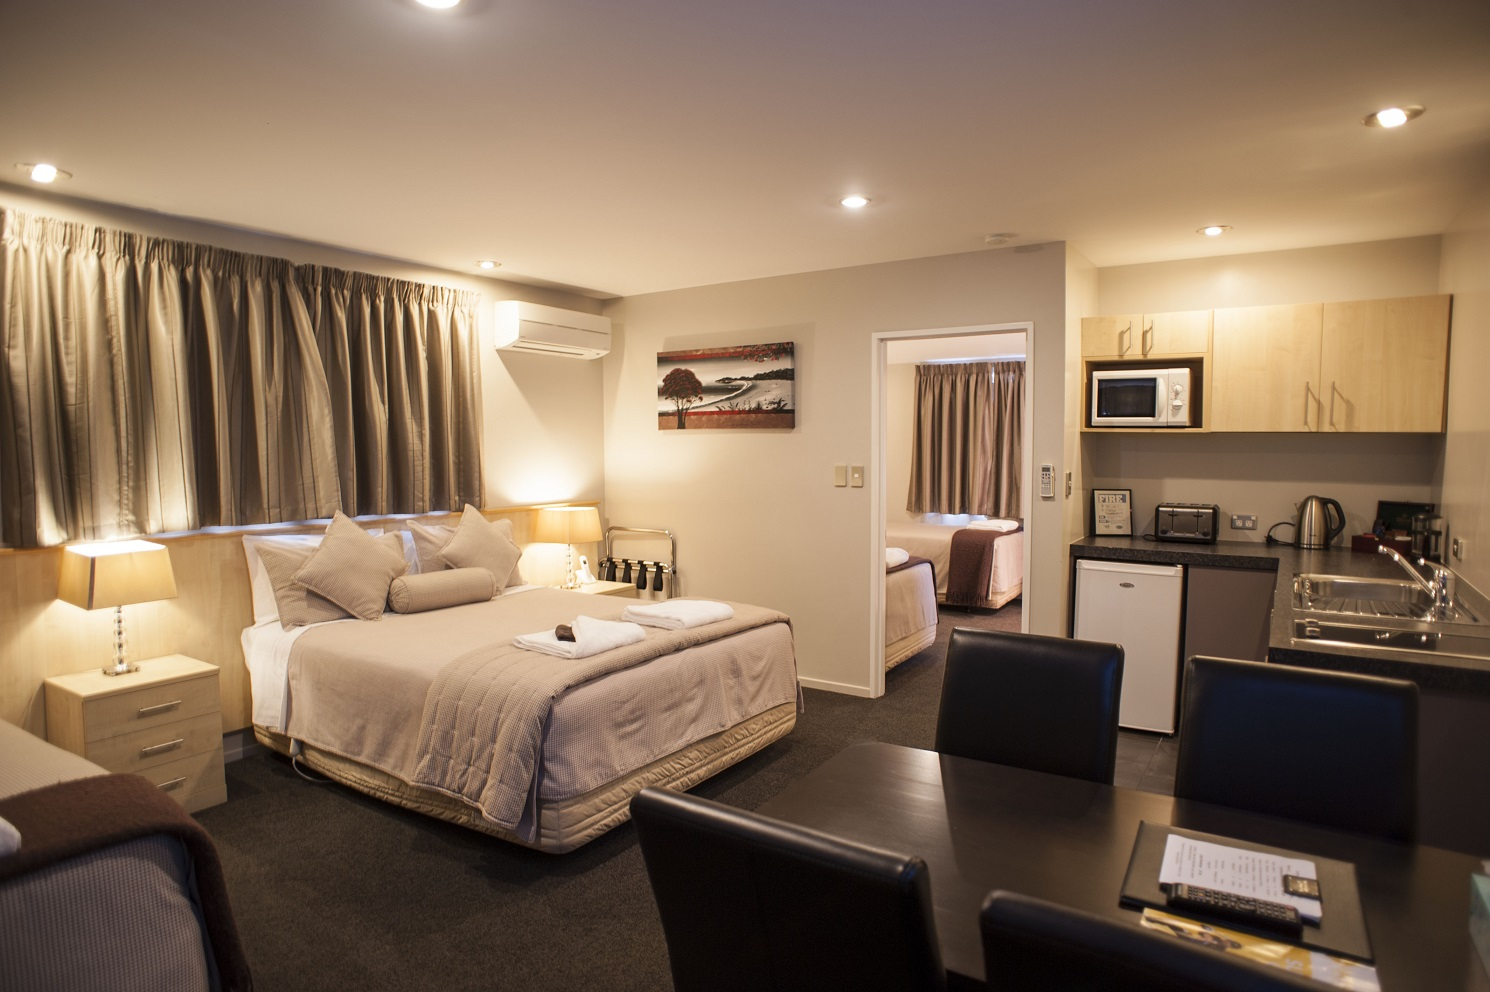 Apartment Interior Design Ideas Christchurch Luxury Apartment Qualmark 5 Star 1 Bedroom